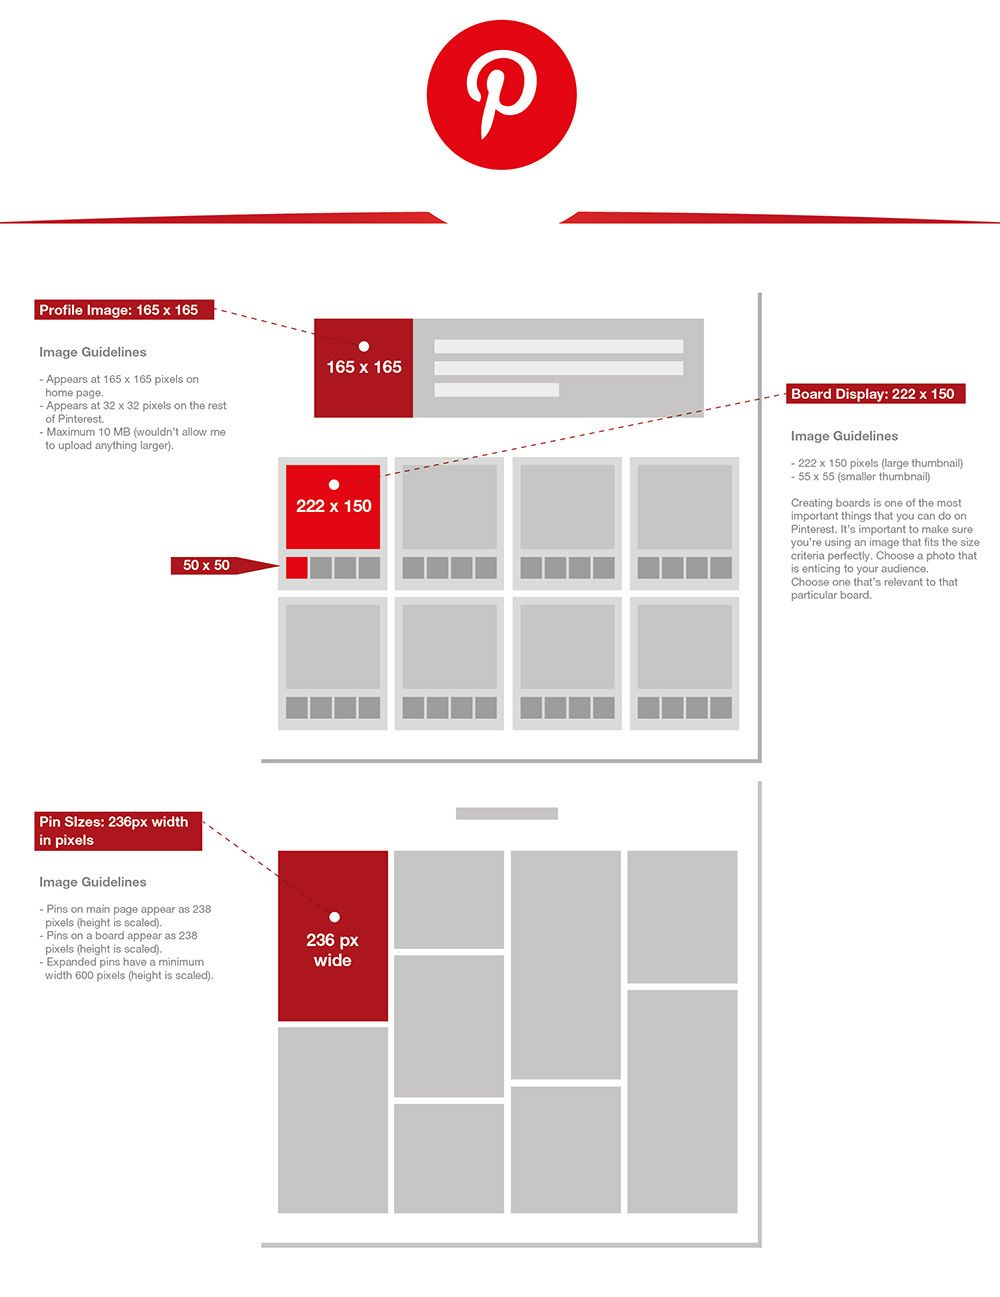 Pin By Stuffilike On Blogging Tips Social Media Images Sizes Social Media Image Size Guide Social Media Images